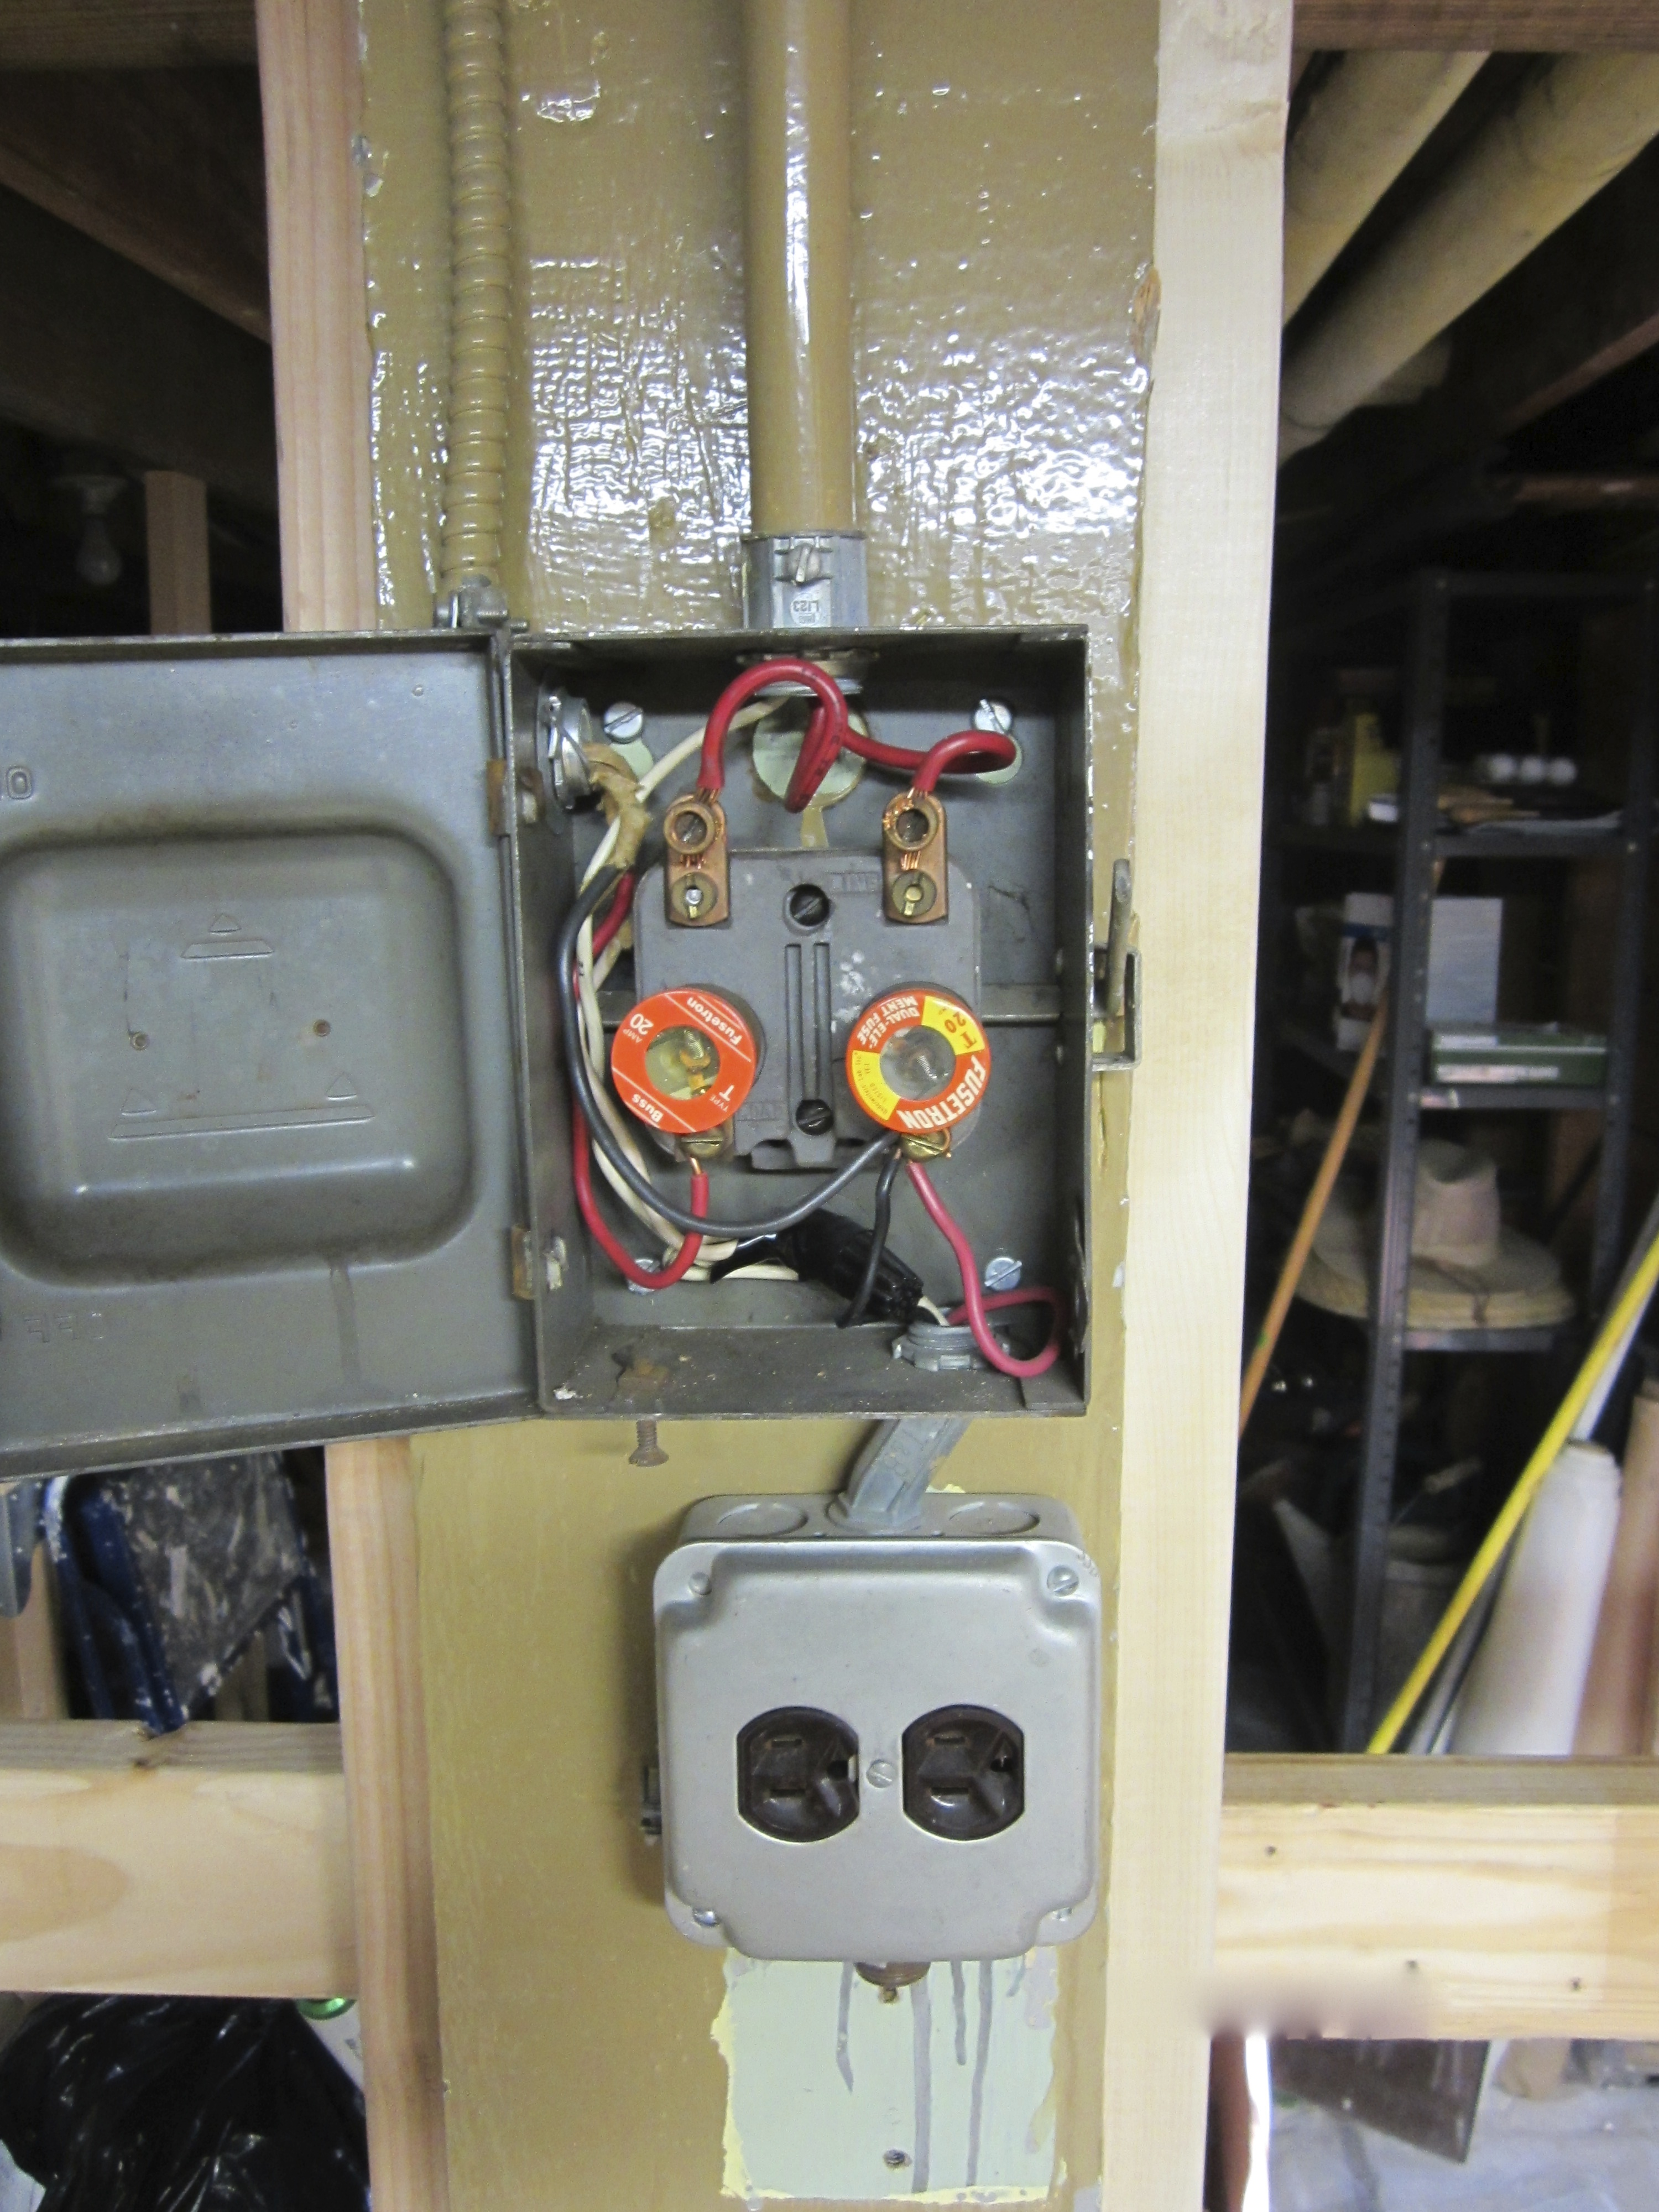 img_0962 Upgrade Fuse Box To Breaker on panel breaker box, single breaker box, home breaker box, power breaker box, ge breaker box, ground and neutral breaker box, generator breaker box, cover breaker box, circuit breaker box, wiring breaker box,